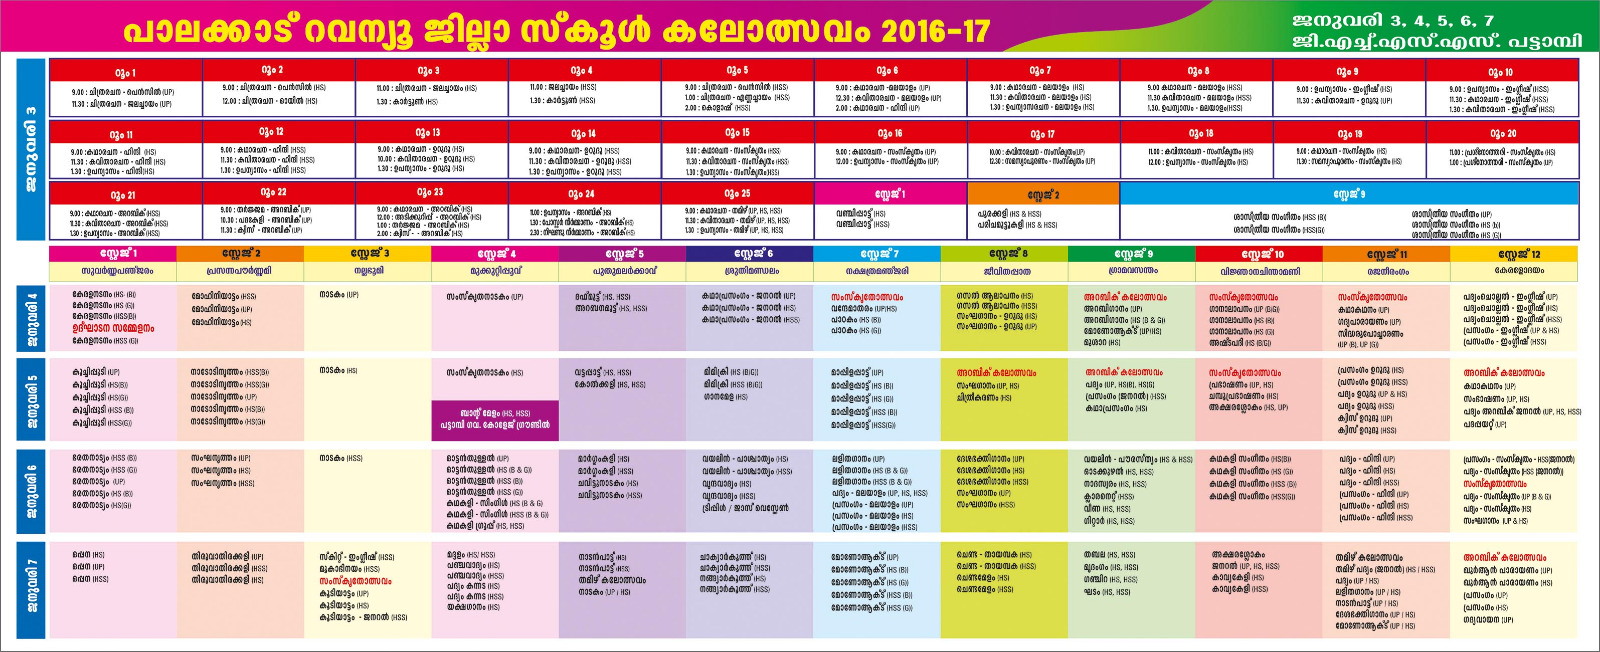 programme schedule (updated)